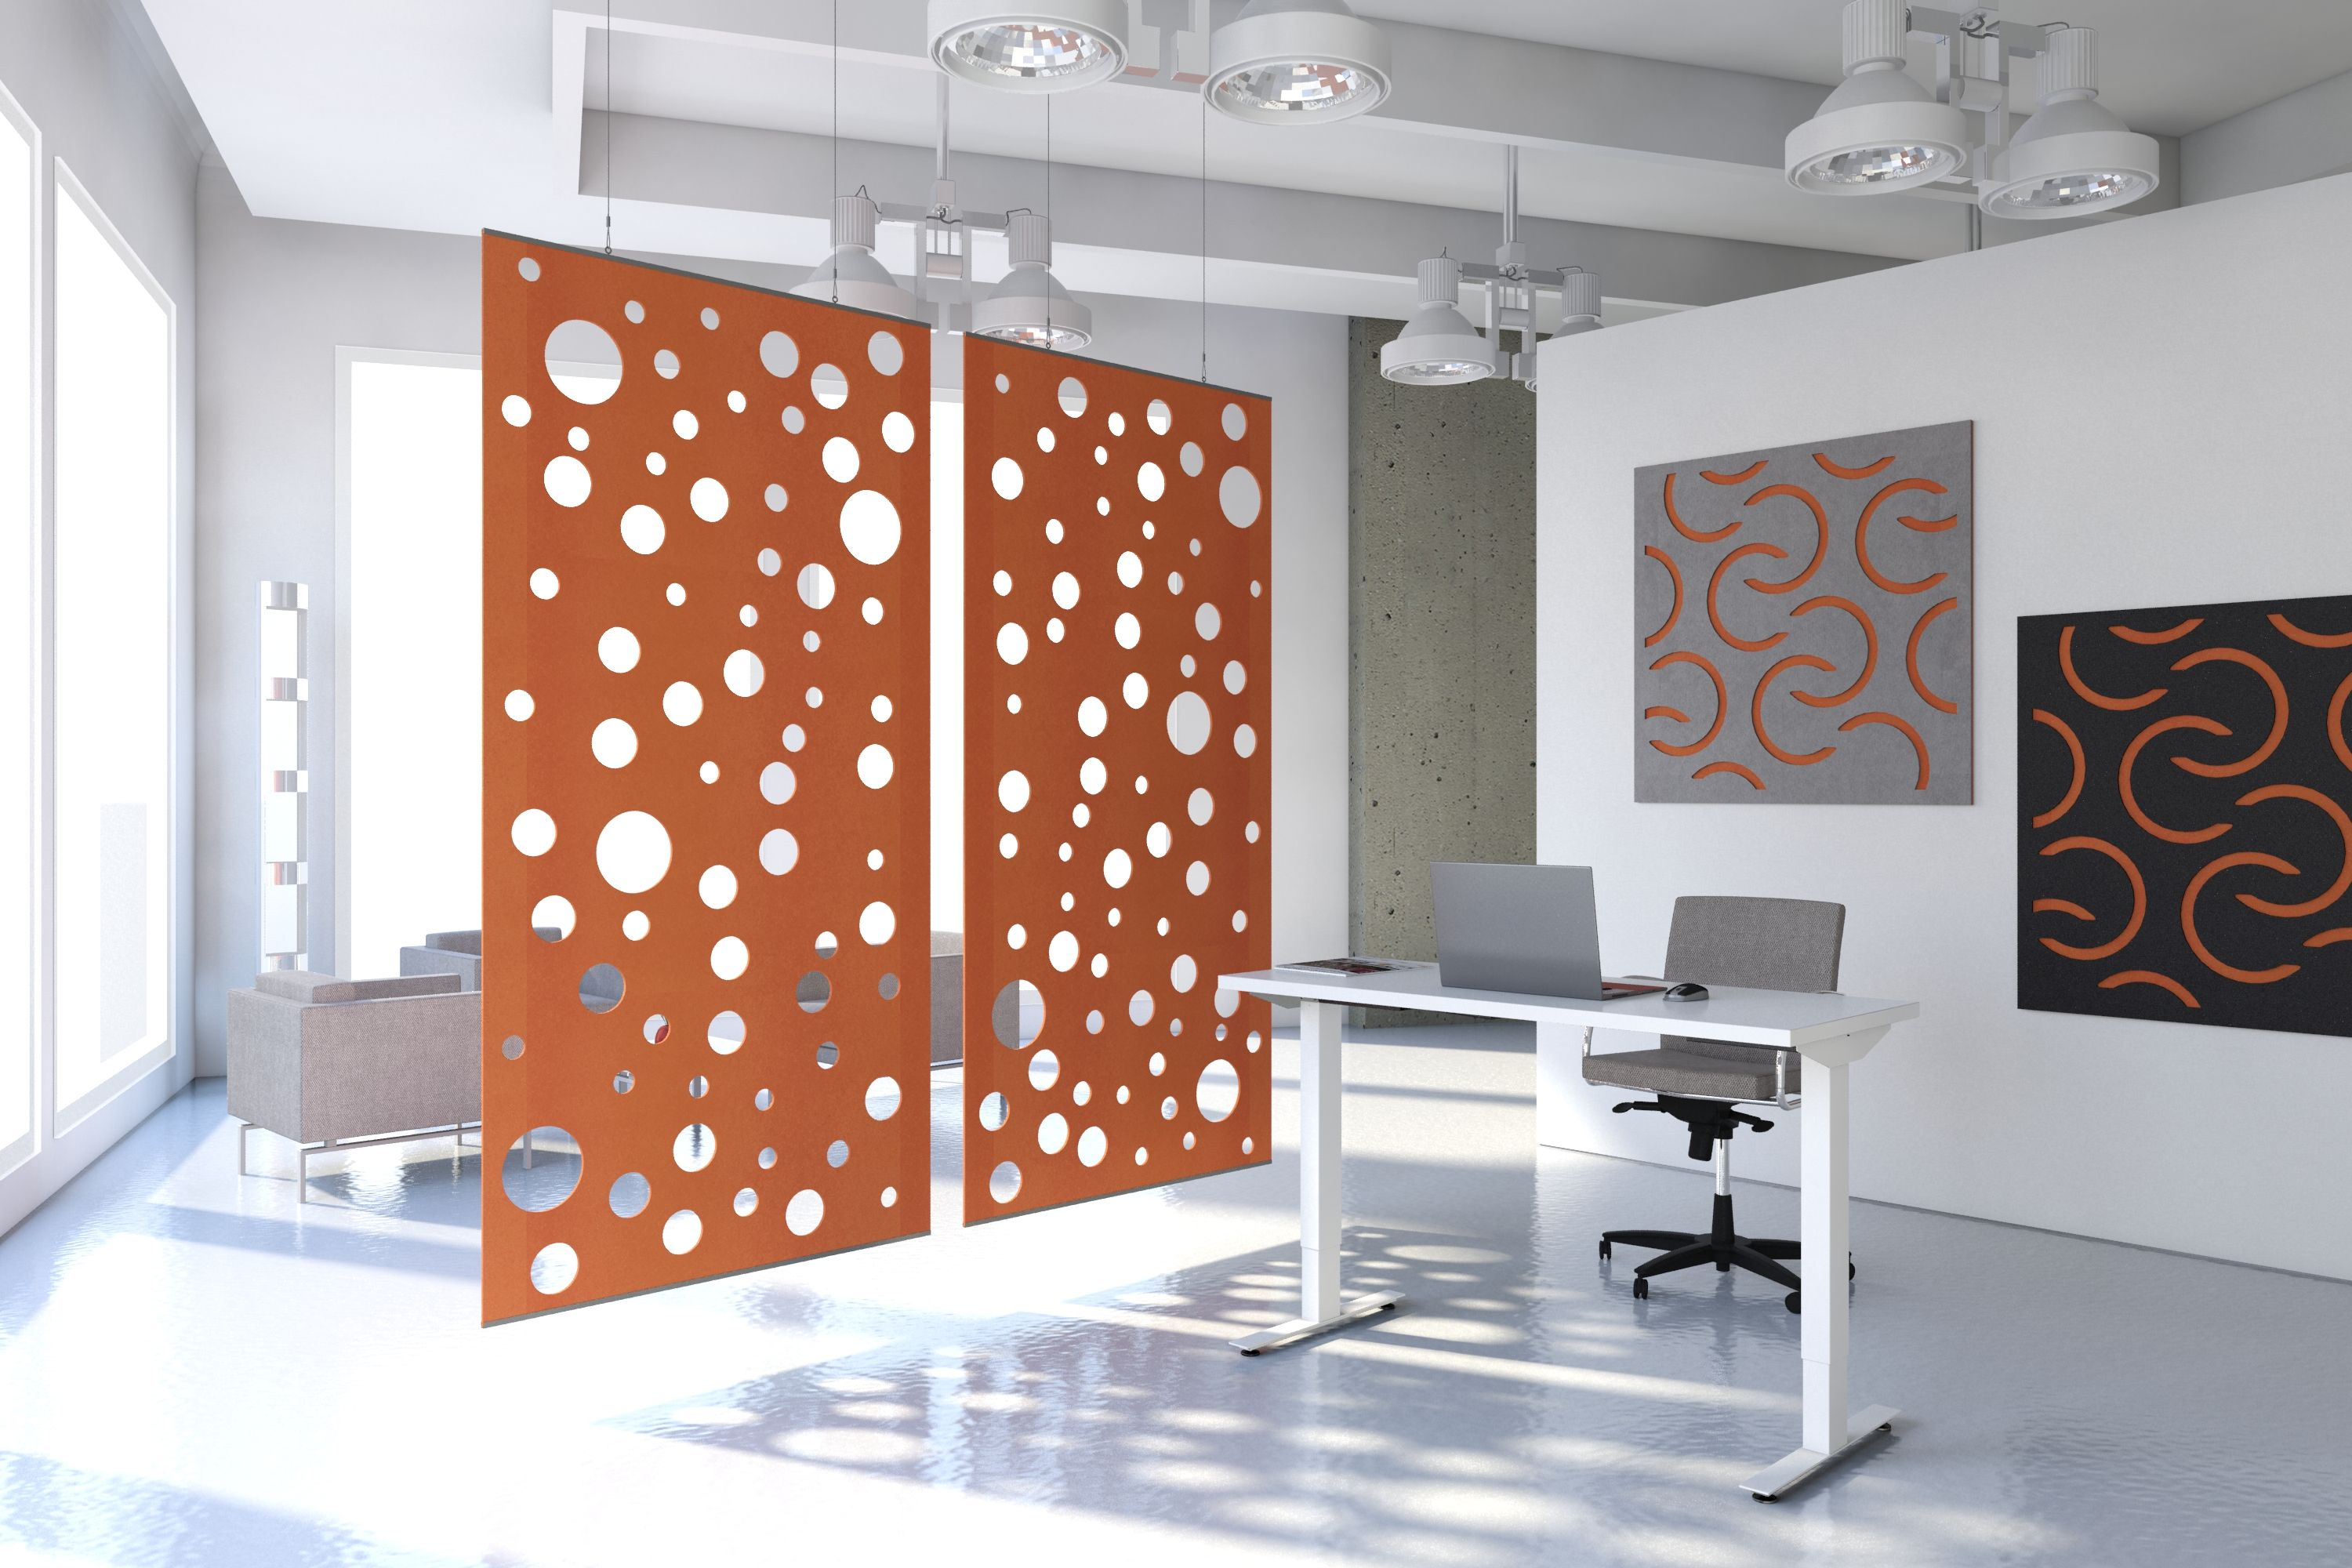 Decorative Acoustic Hanging Wall Panels Acoustic Wall Panels Home Ceiling Wall Panels